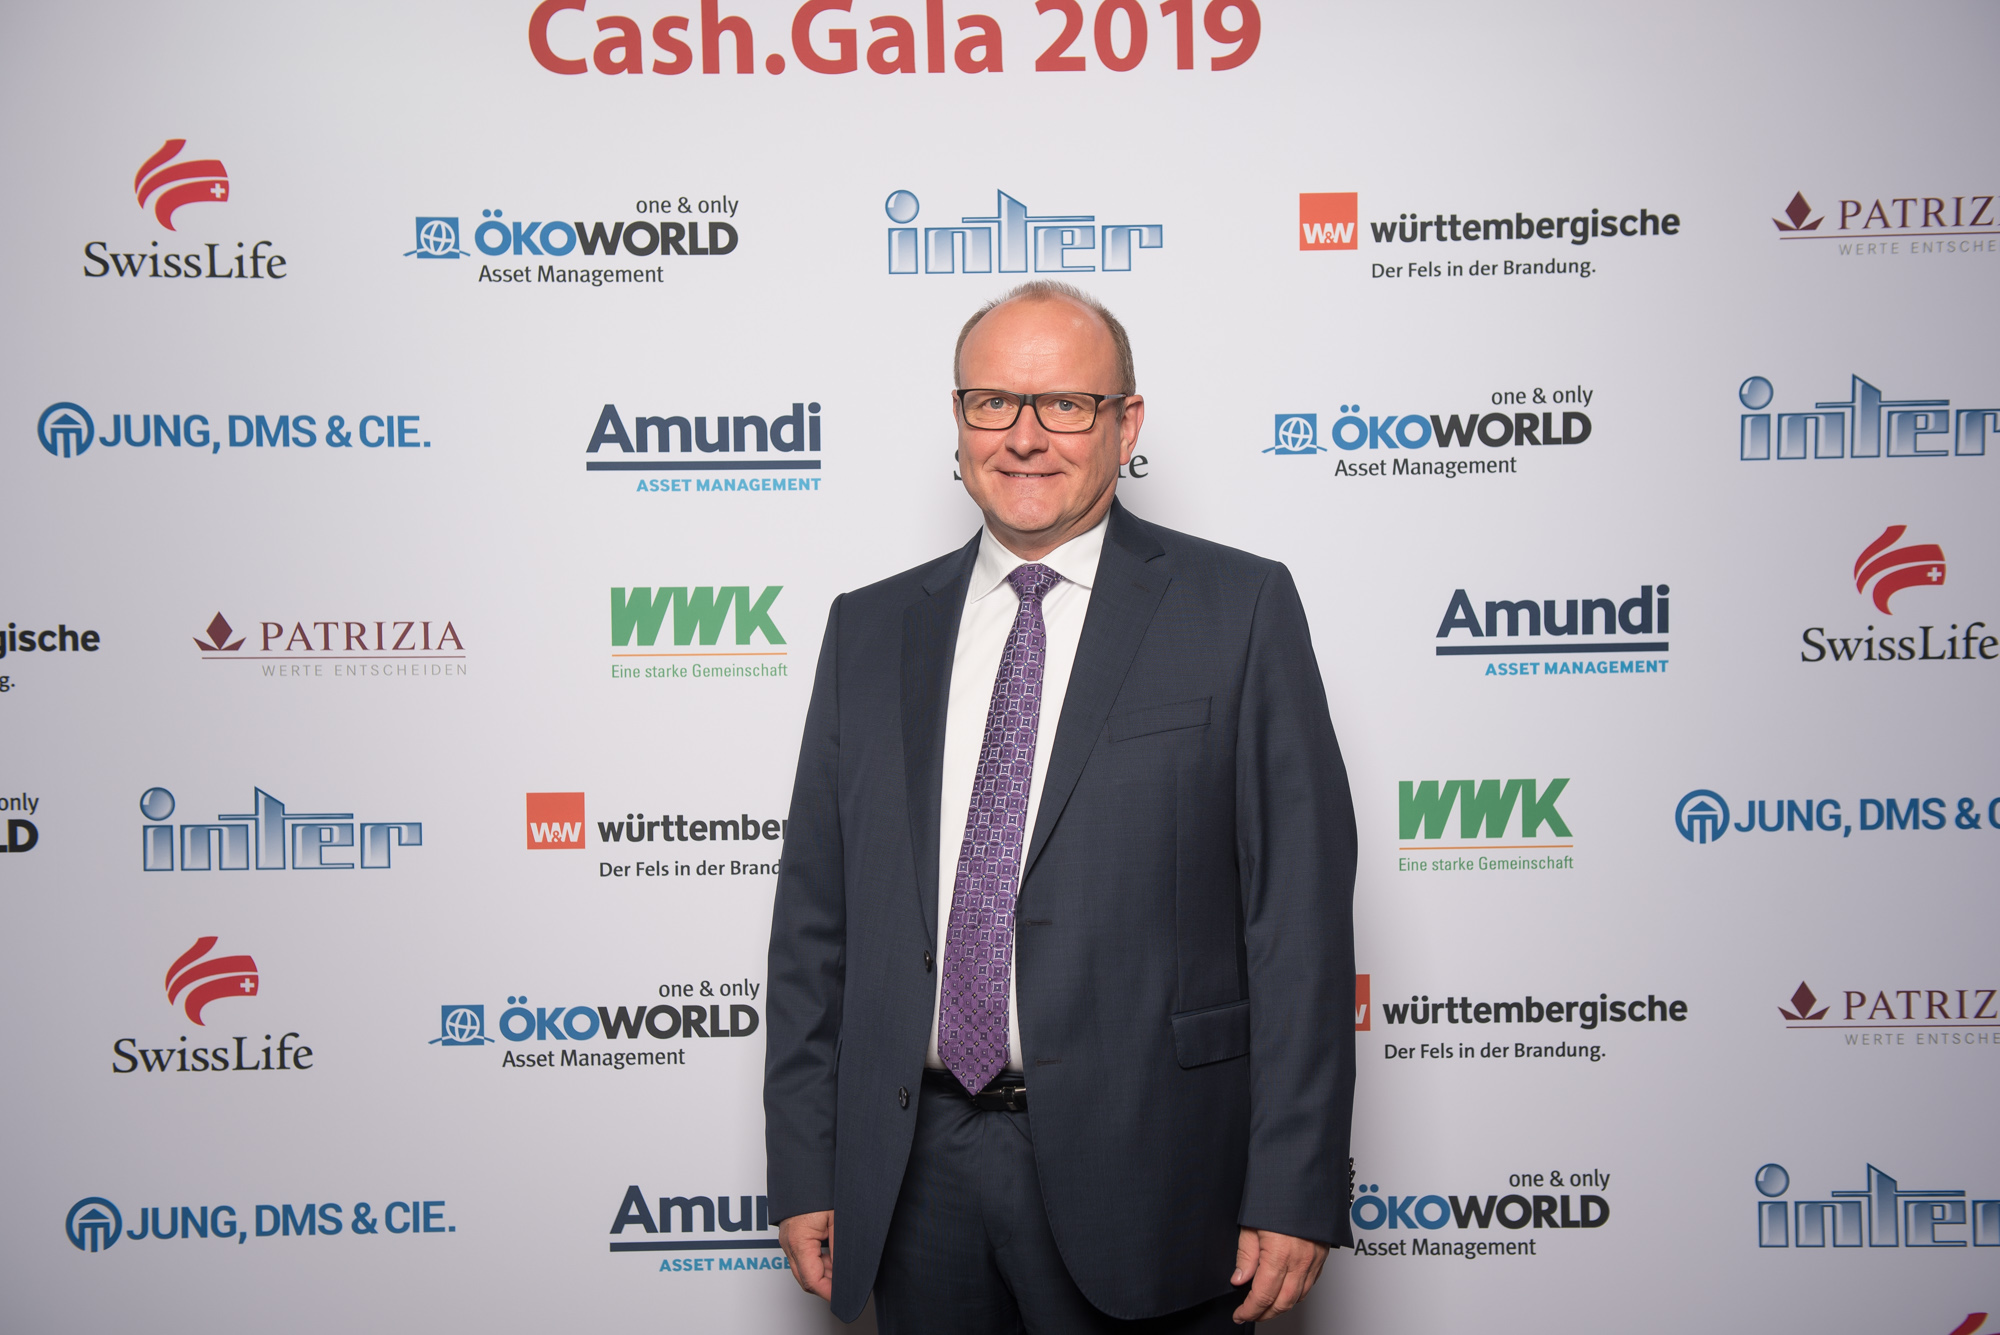 CashGala 2019 0031 AM DSC7035 in Cash.Gala 2019